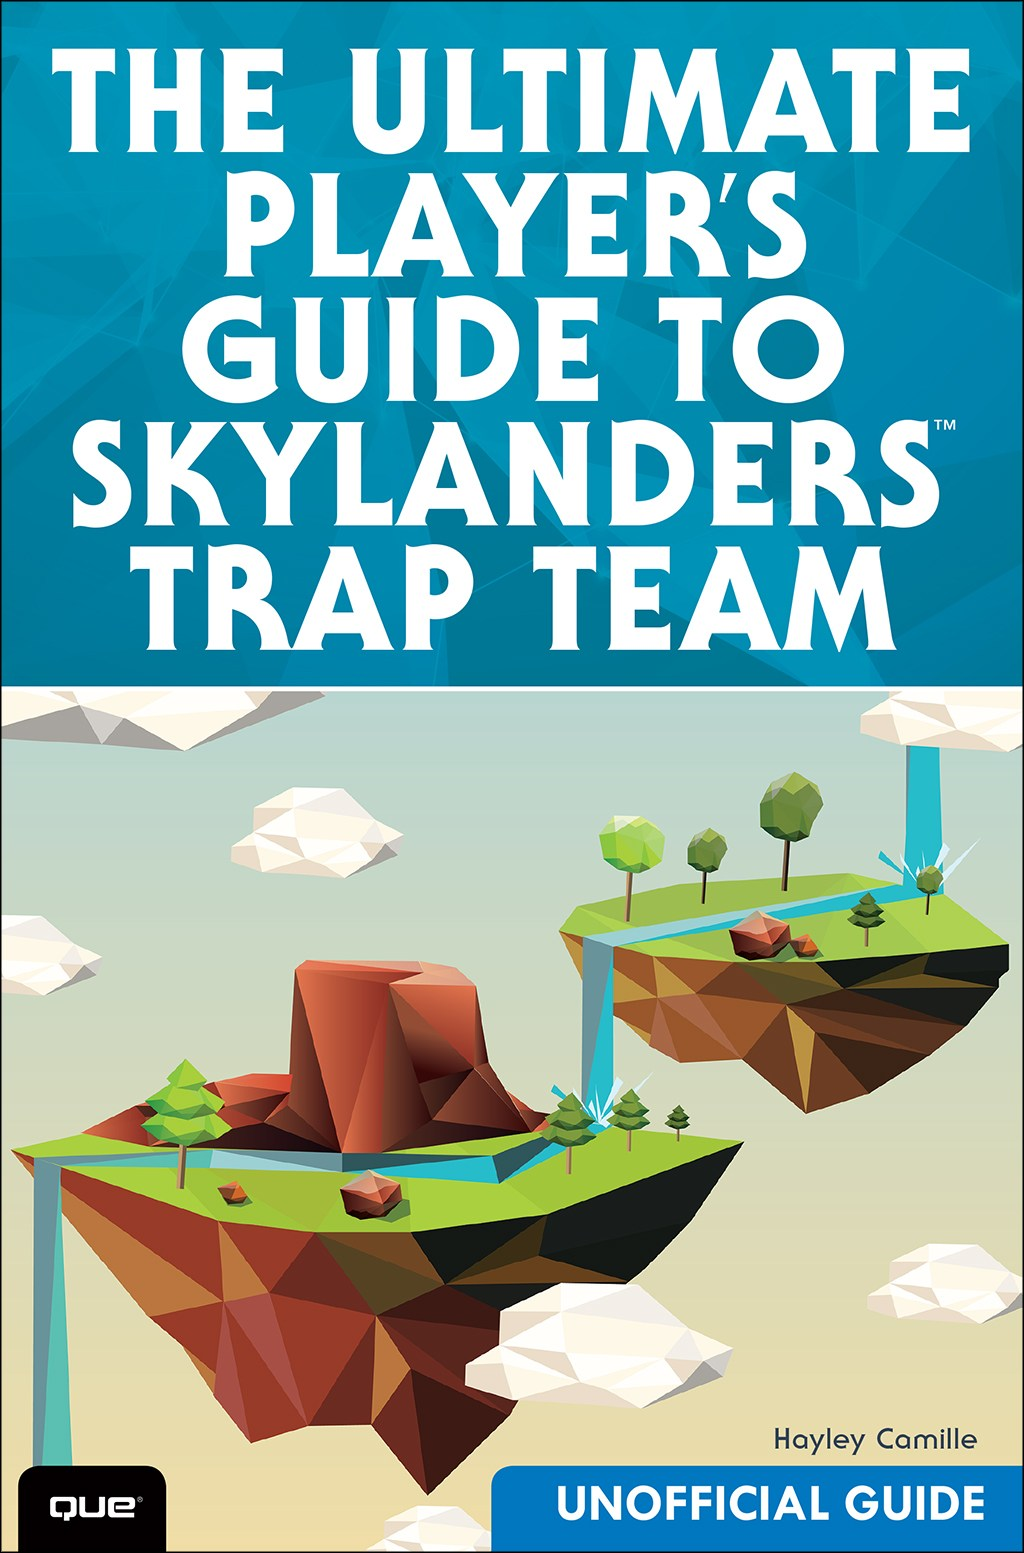 Ultimate Player's Guide to Skylanders Trap Team (Unofficial Guide), The